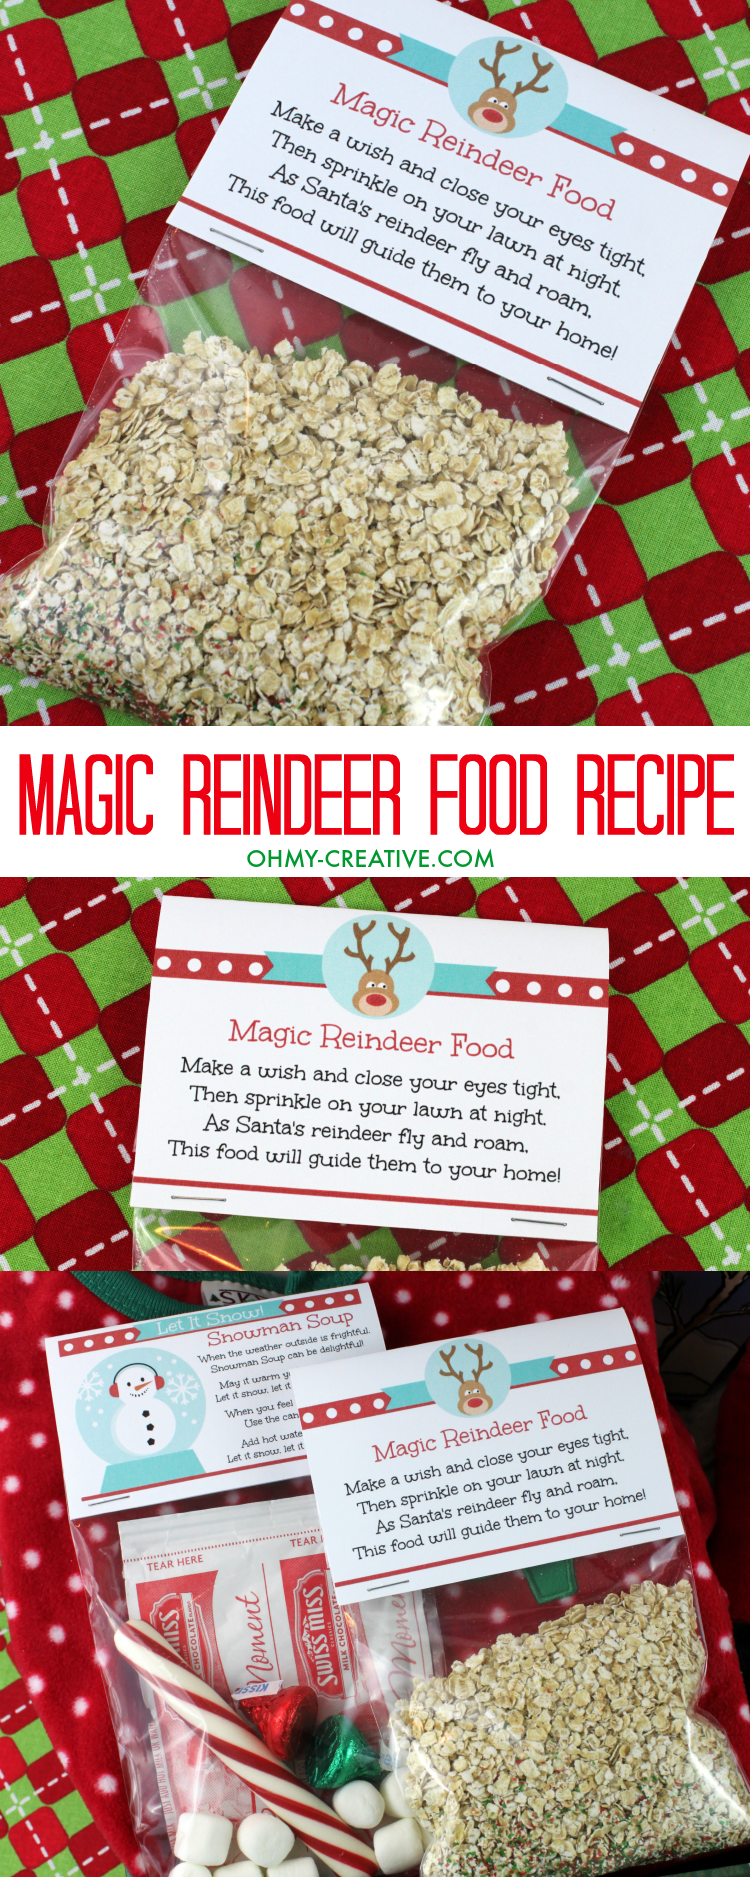 graphic about Reindeer Food Printable called Magic Reindeer Food items Recipe and Printable - Oh My Innovative